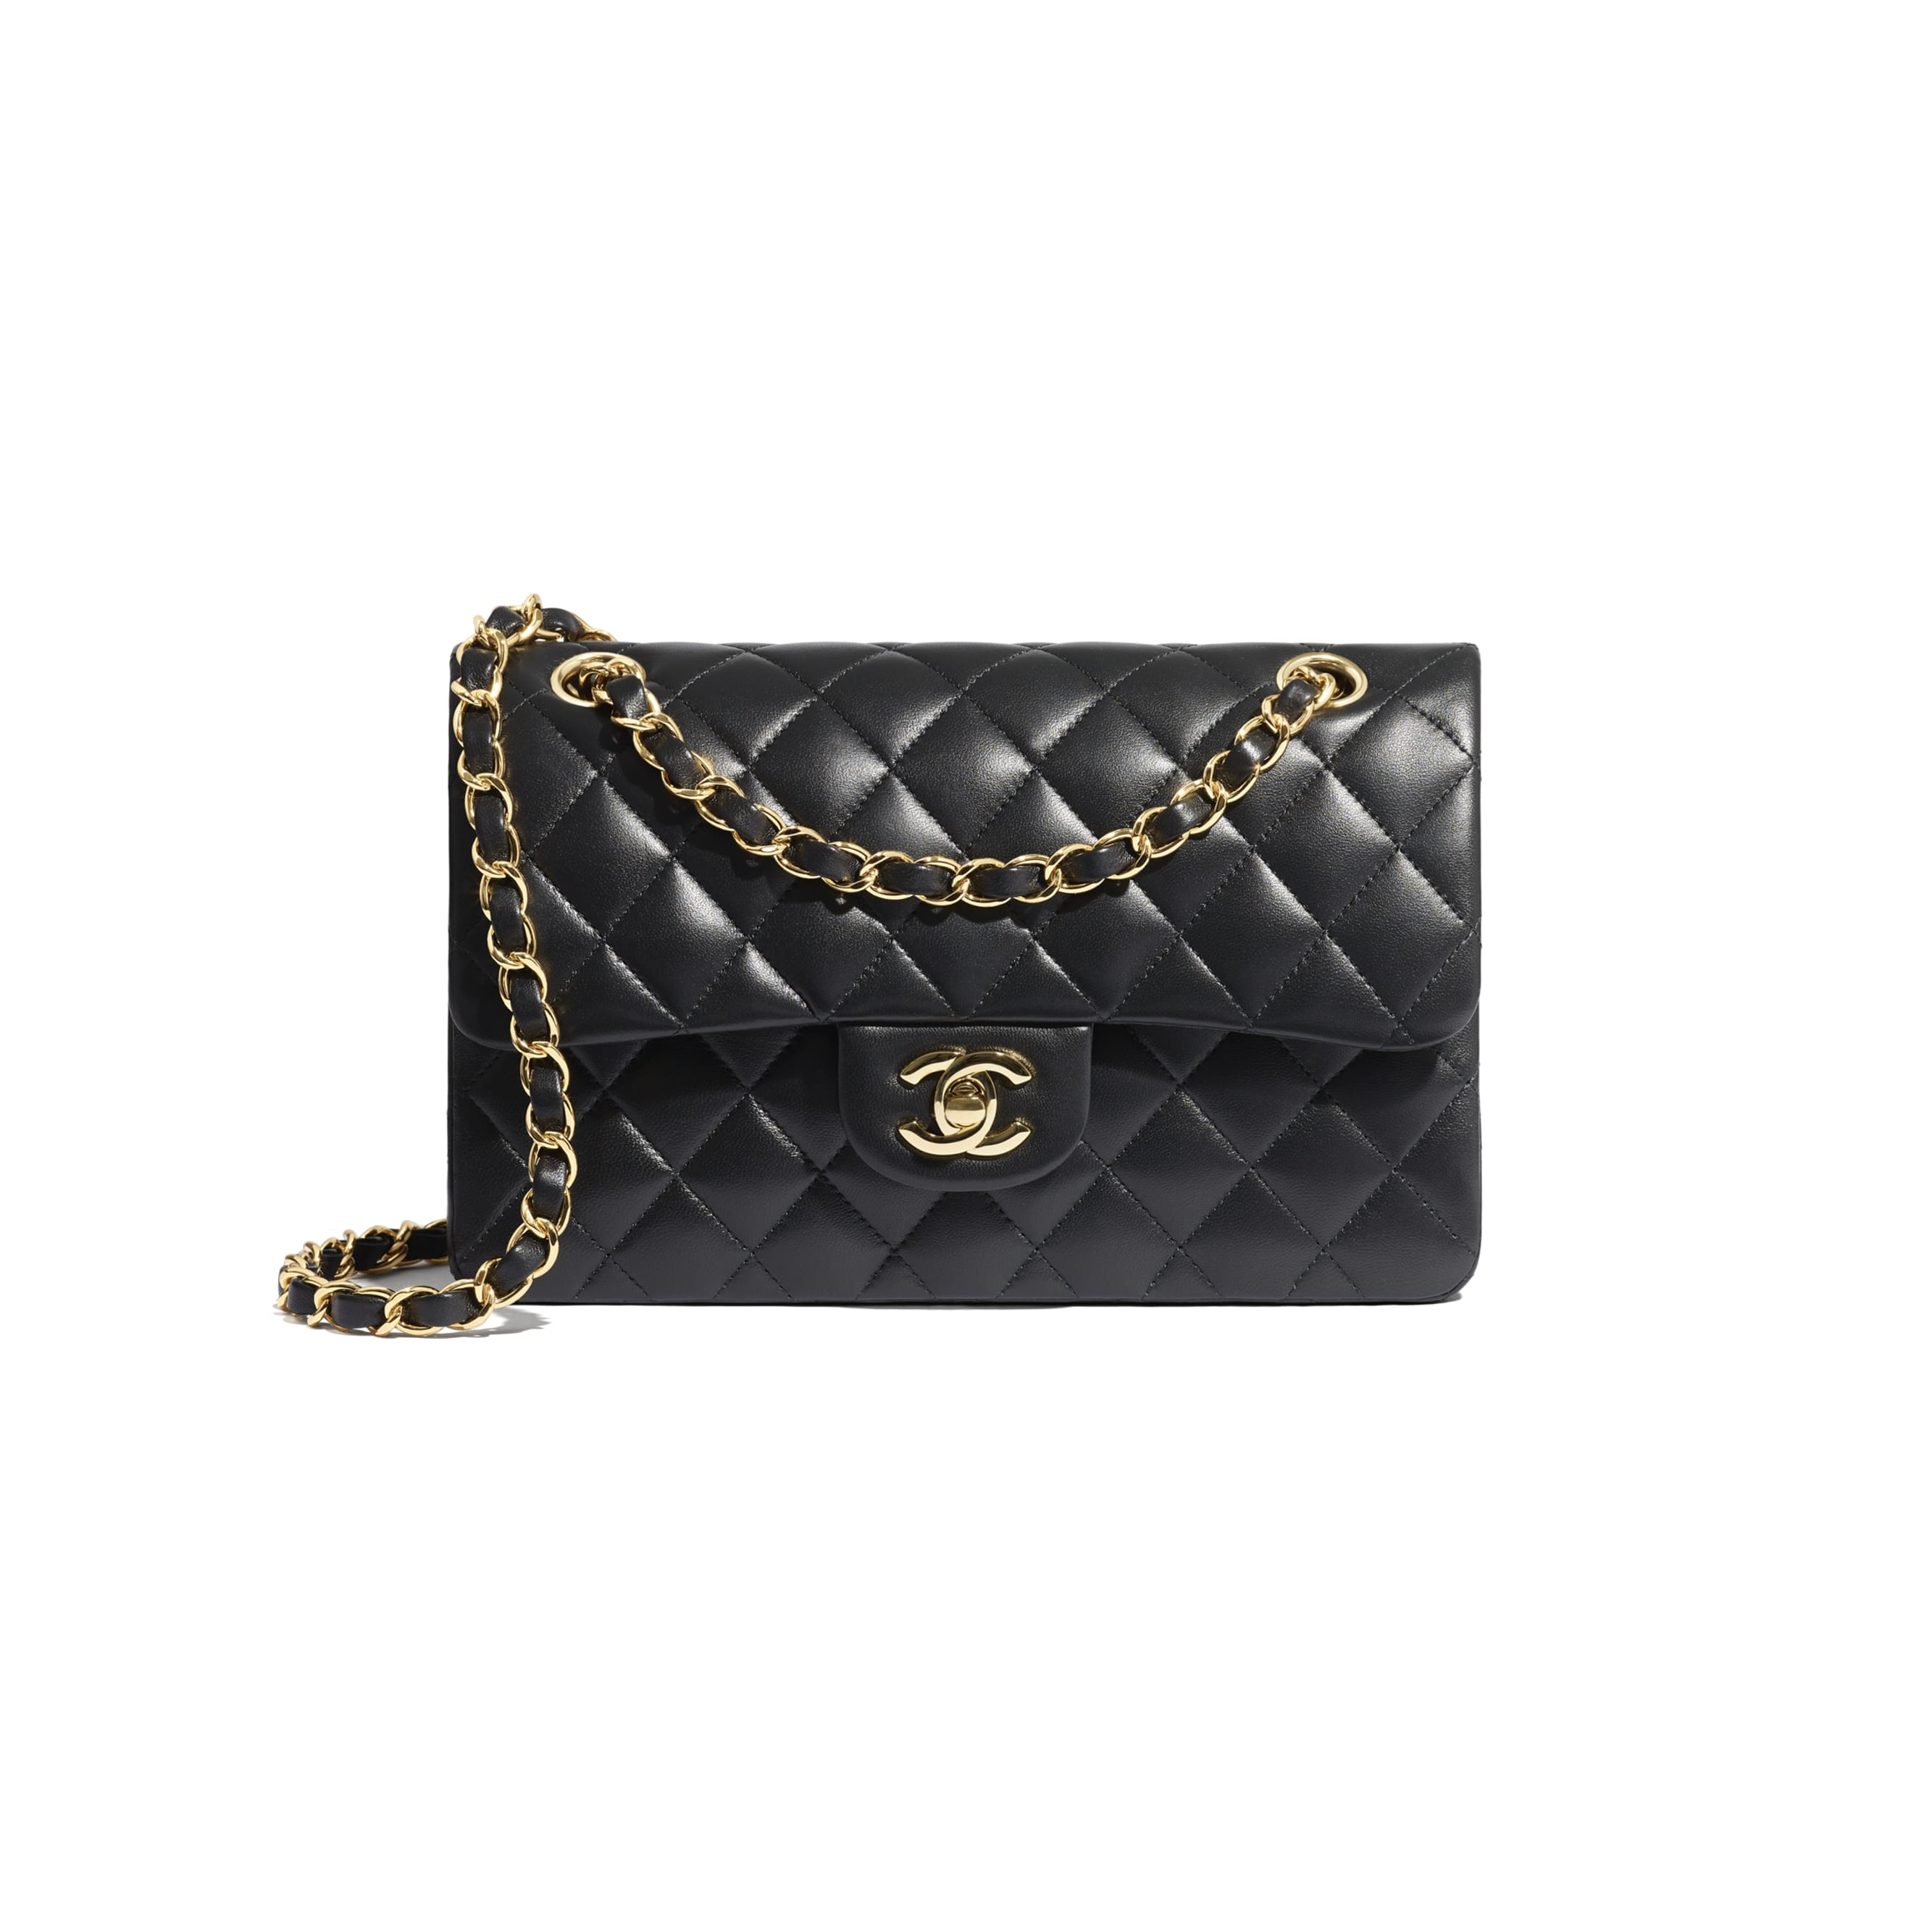 Small Classic Handbag - Black - Lambskin - CHANEL - Default view - see standard sized version